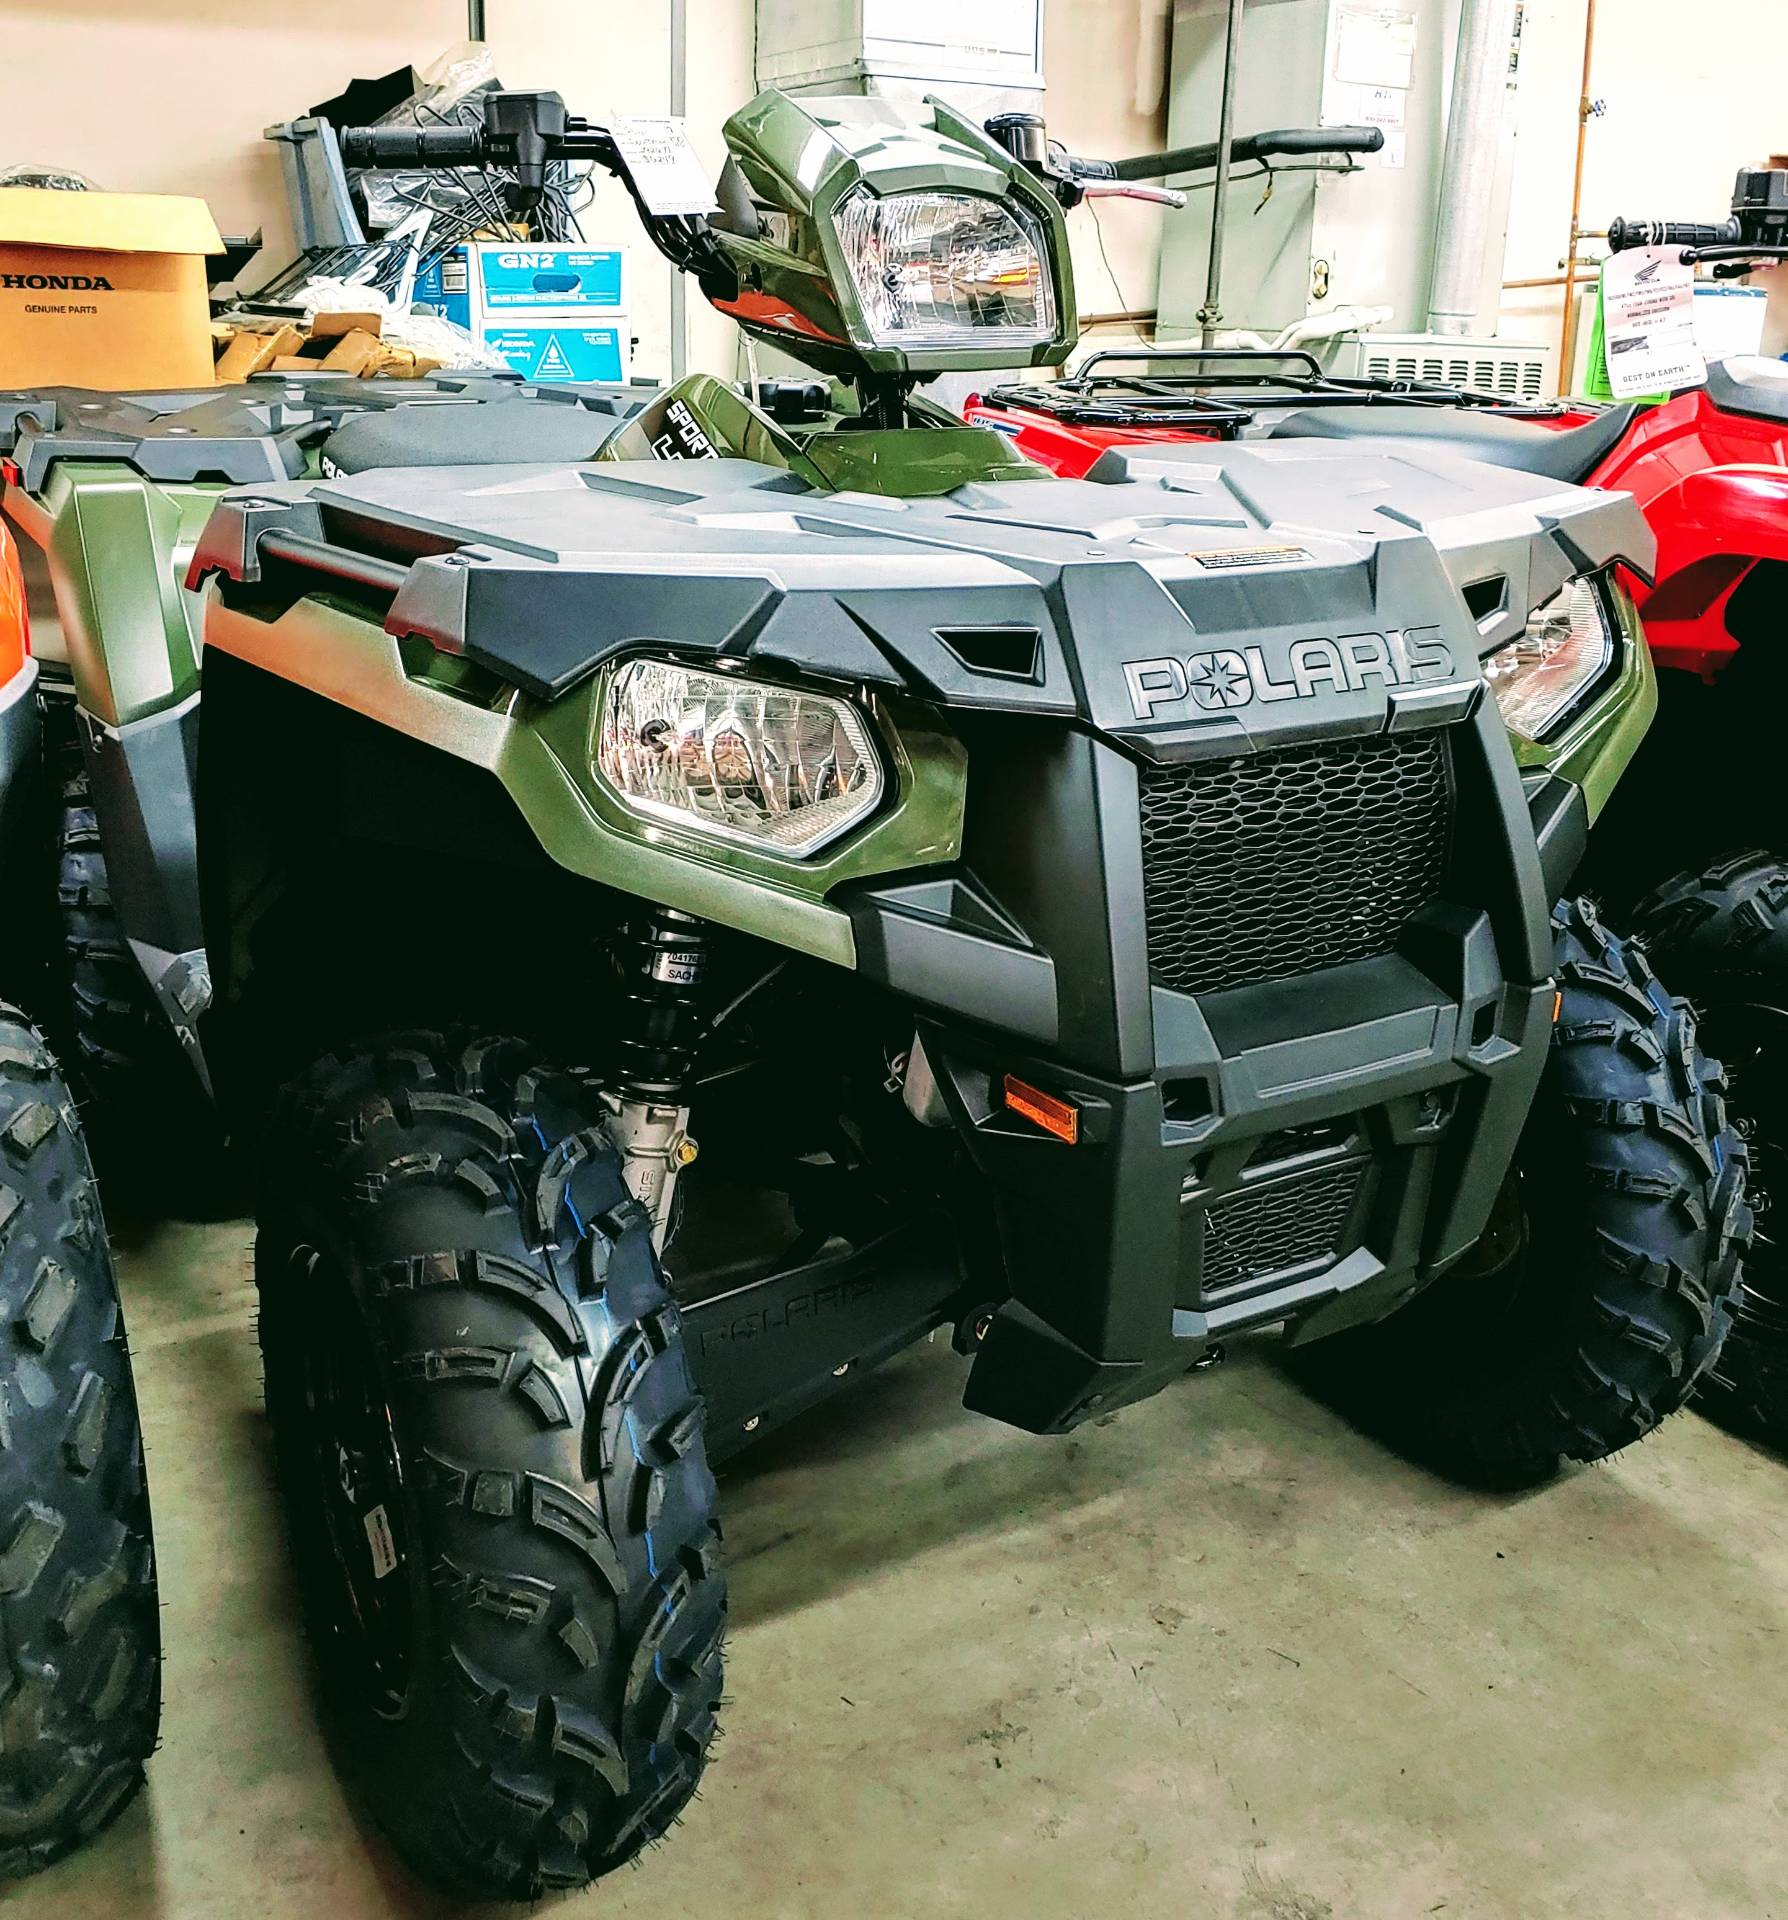 2019 Polaris Sportsman 450 H.O. in Statesville, North Carolina - Photo 2